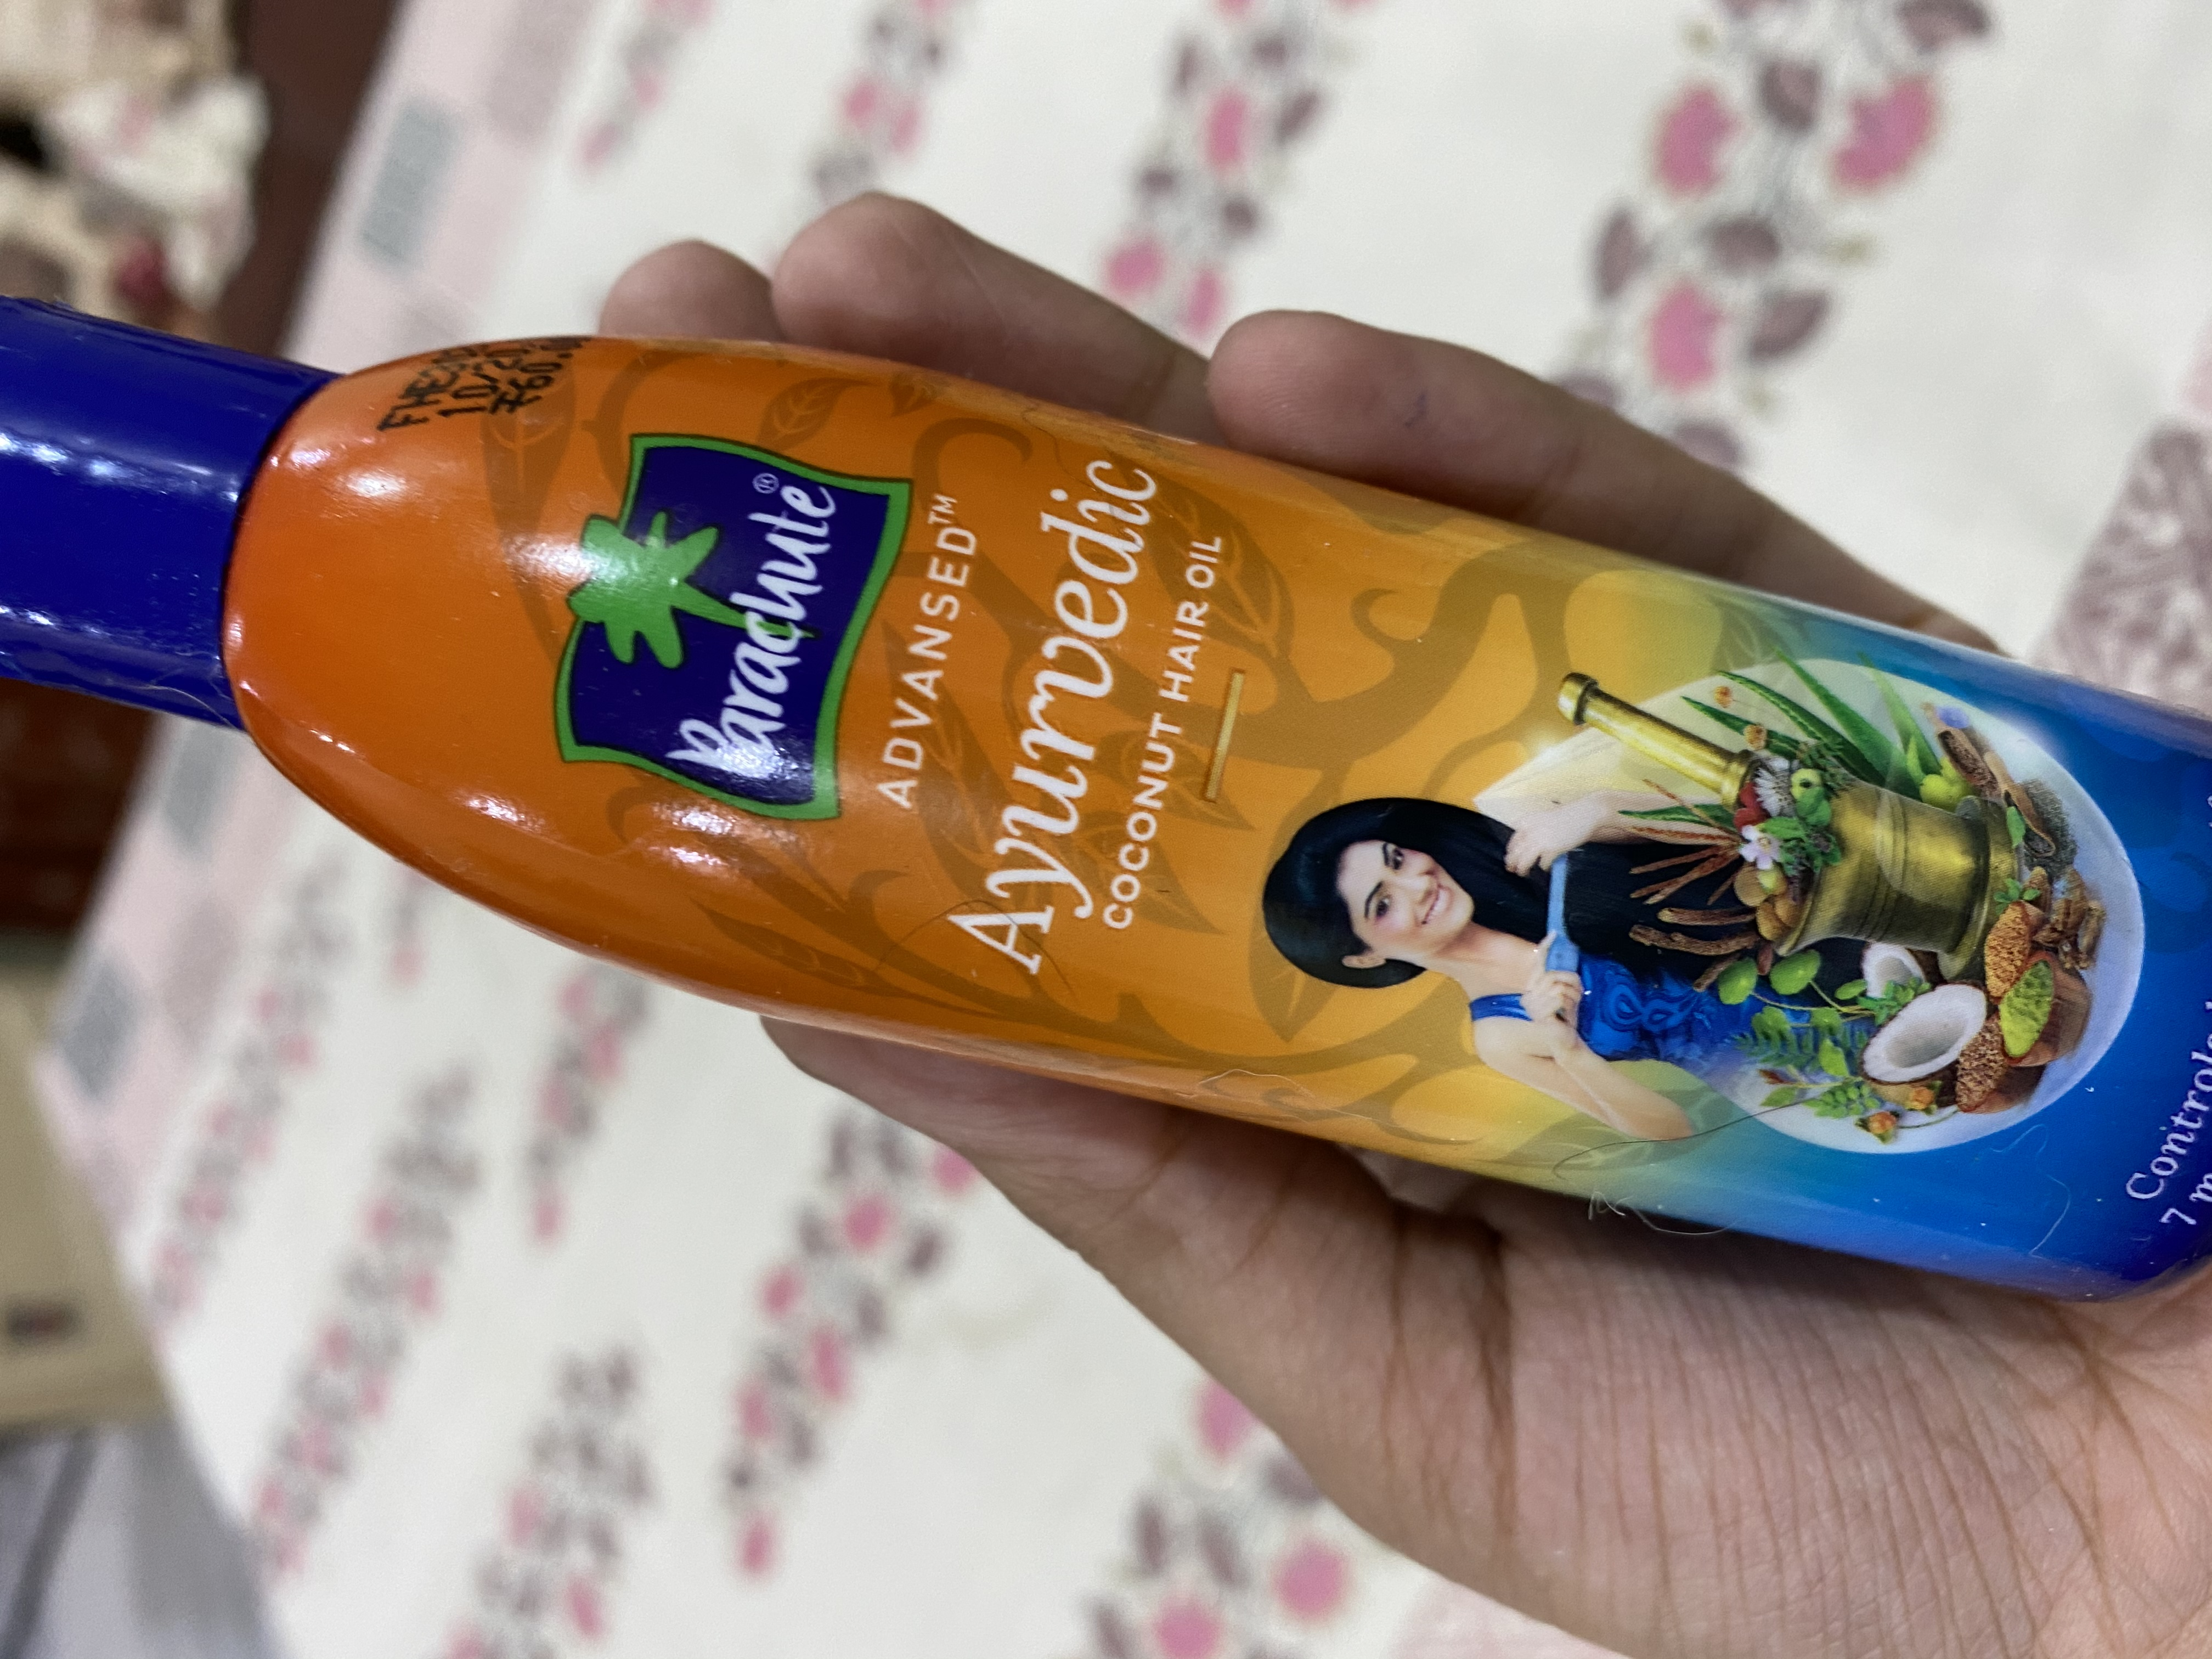 Parachute Advansed Ayurvedic Coconut Hair Oil pic 2-One of the best oil-By the_beauty_bets